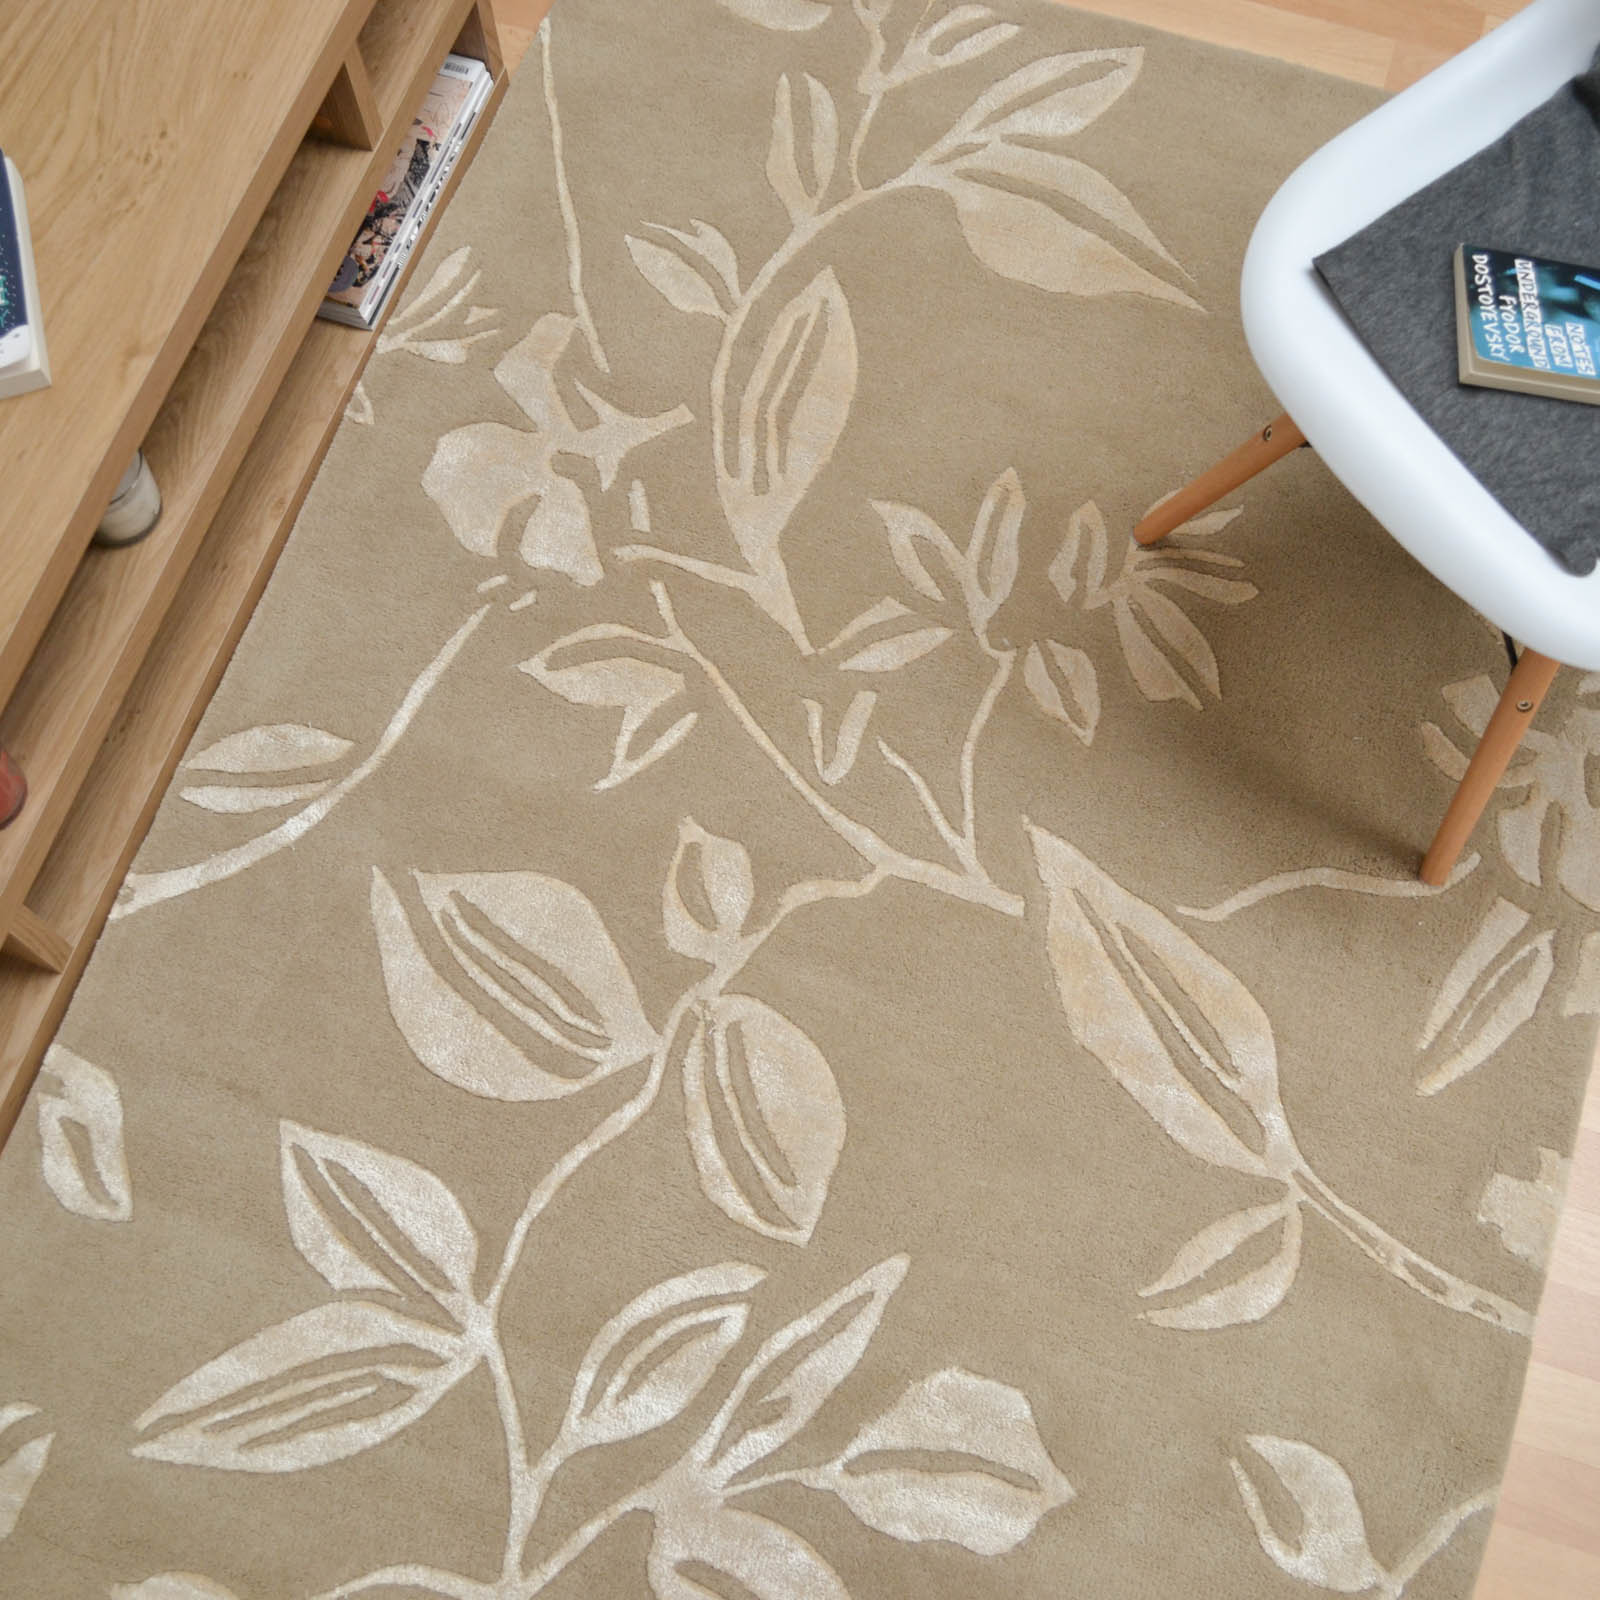 Leaf Trail Rugs in Mocha